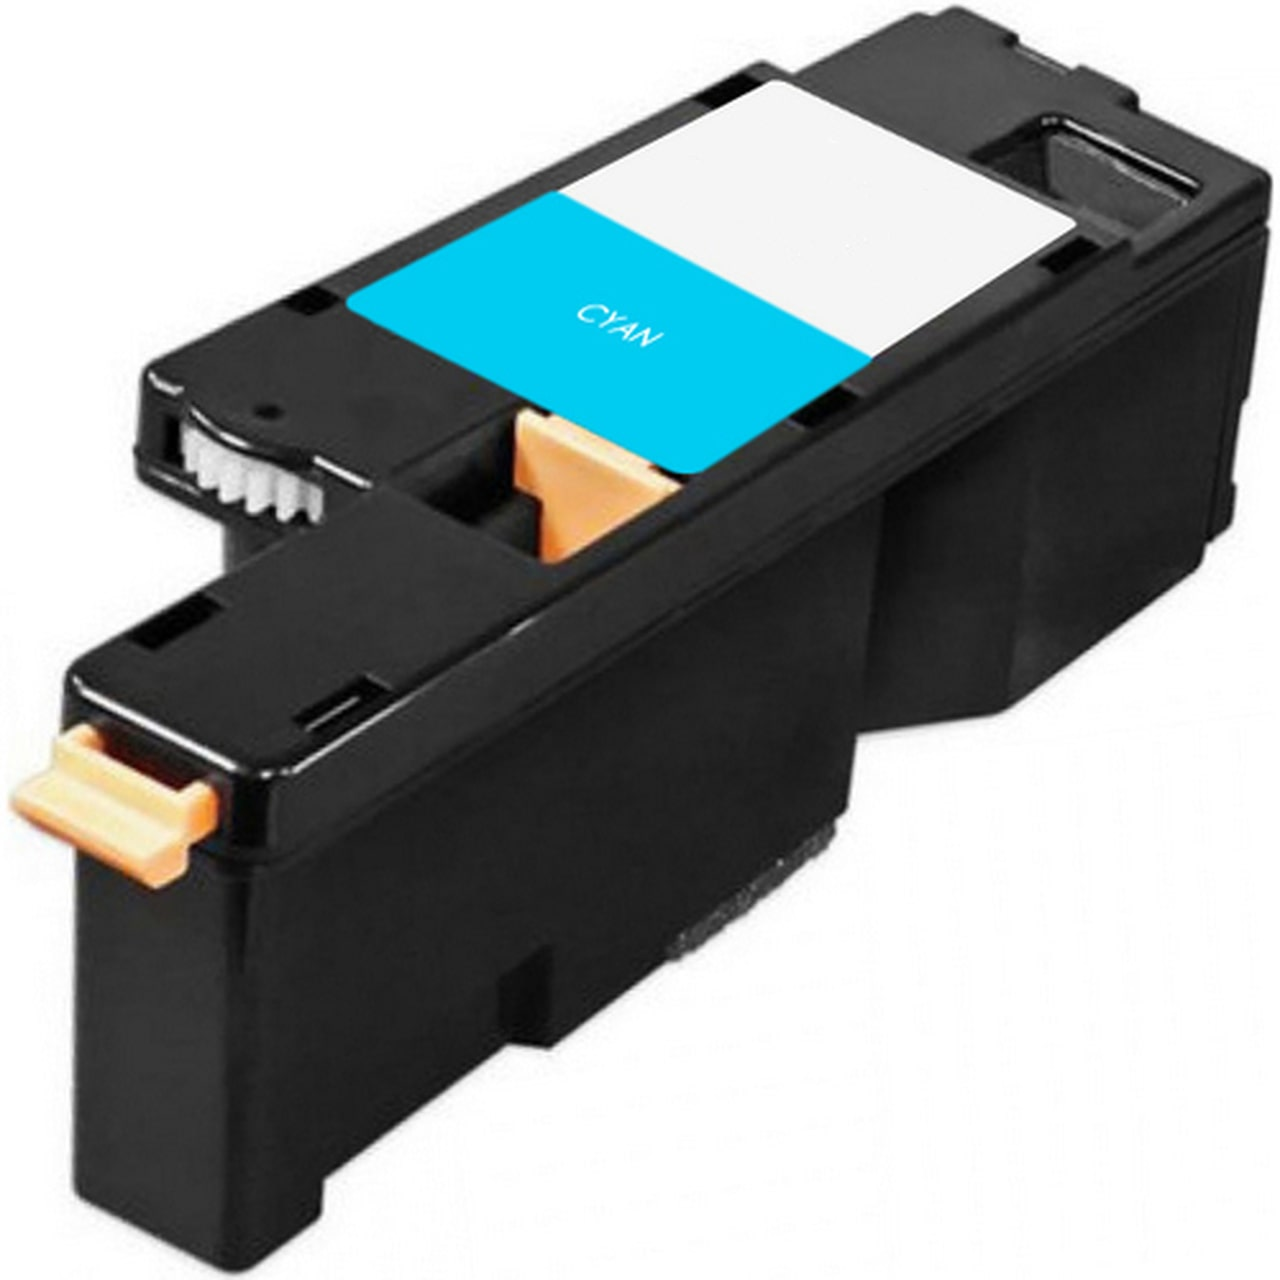 593-BBJU Toner Cartridge - Dell Compatible (Cyan)